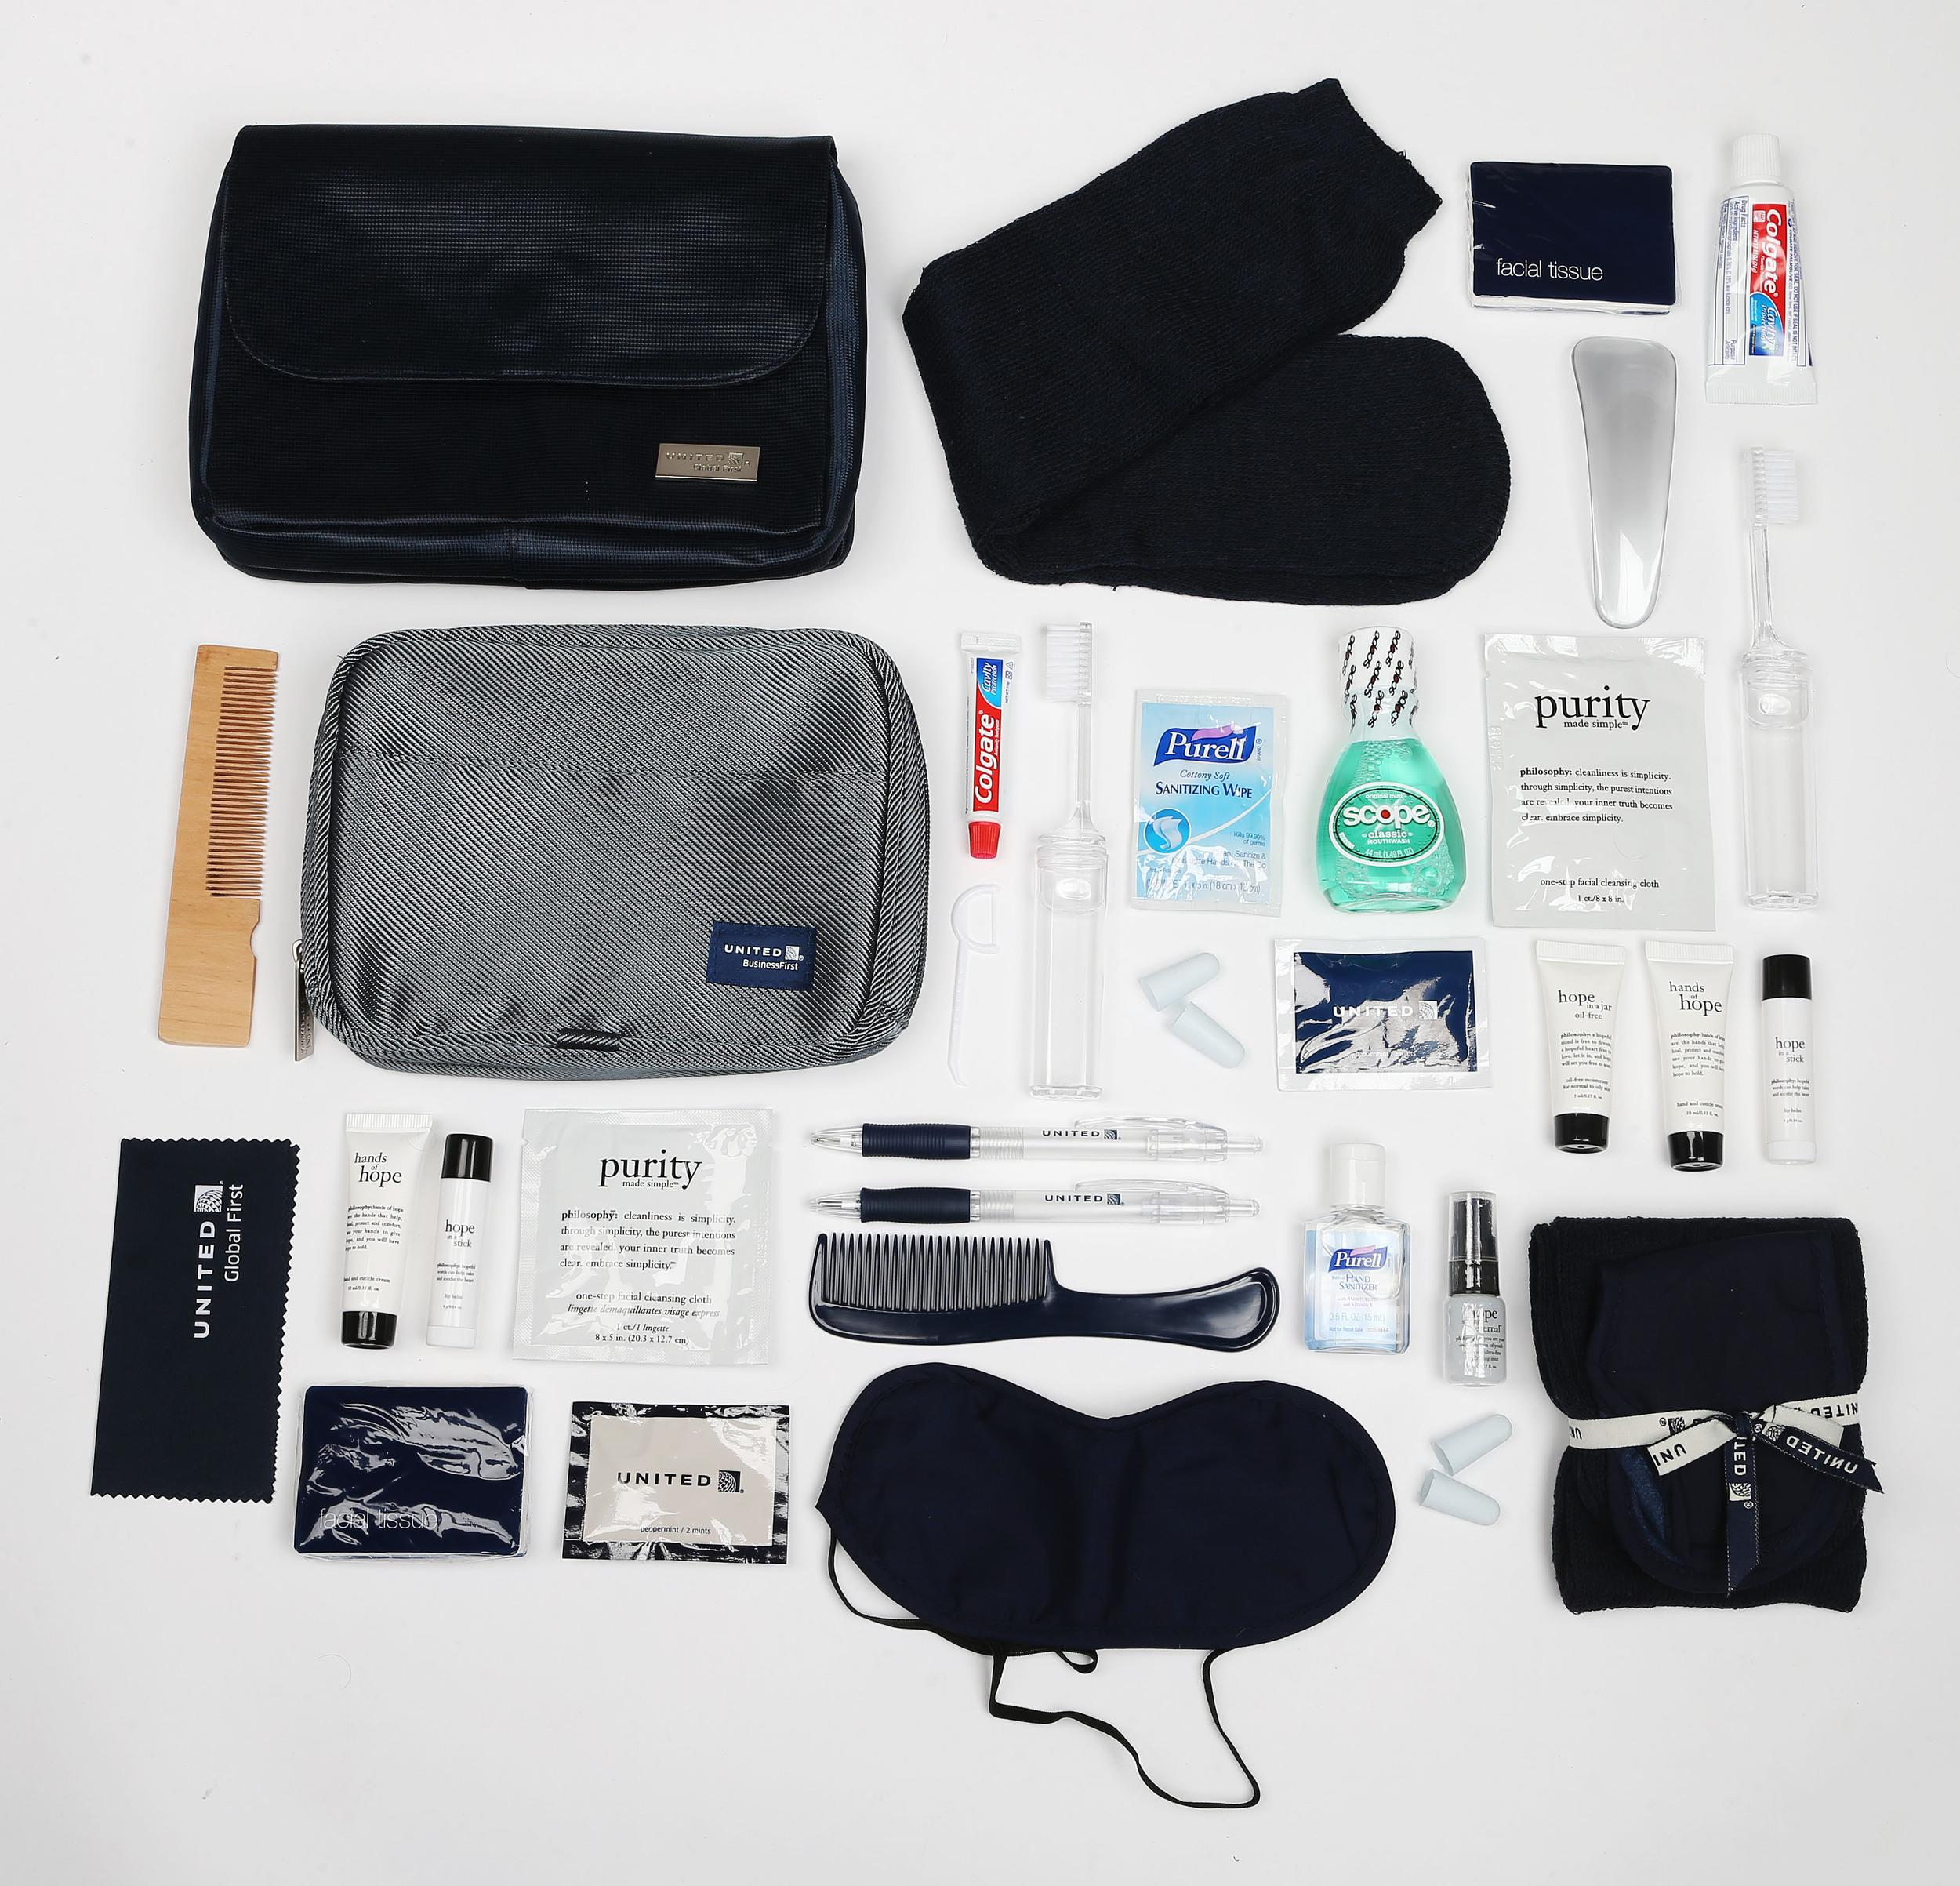 """<p><strong>What do you get?</strong> United Global First: Socks, eye mask, ear plugs, shoe horn, hand sanitiser, toothbrush, toothpaste, mouth wash, flossing stick, tissues, mints, comb, screen wipe, pen, Philosophy products (facial cleaning cloth, hydrating mist, lip balm, moisturiser, hand and cuticle cream)<br /> United Business First: Socks, eye mask, comb, pen, toothbrush, toothpaste, mints, ear plugs, sanitising wipe, tissues, Philosophy goods (hand and cuticle cream, lip balm and one-step facial cleaning cloth)<br /> <strong>Best bit of the kit?</strong> The """"value"""". Between the dental-hygiene products and the skincare products we could survive for a week on this kit.</p>"""